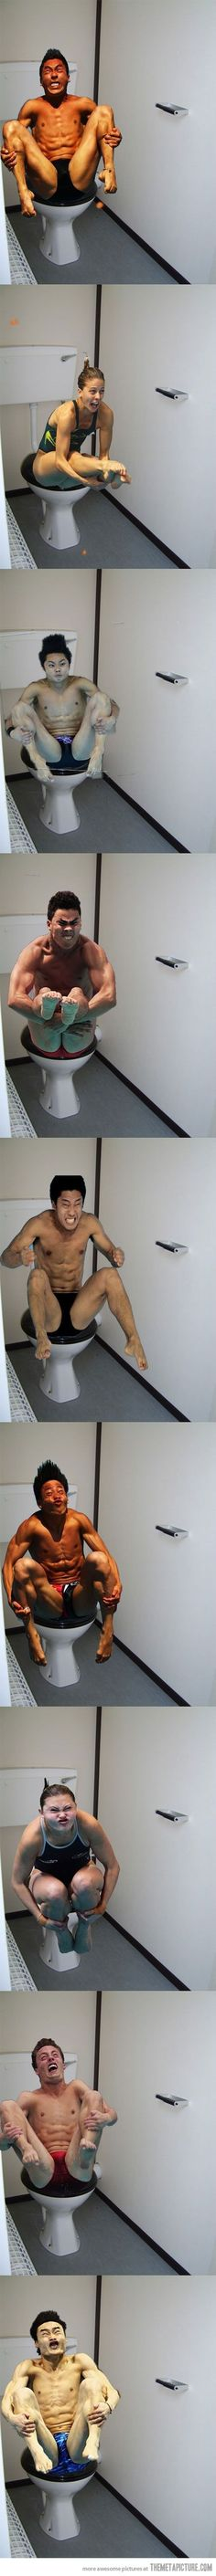 Olympic divers on the toilet… This made me laugh for 10 minutes...tears in my eyes.